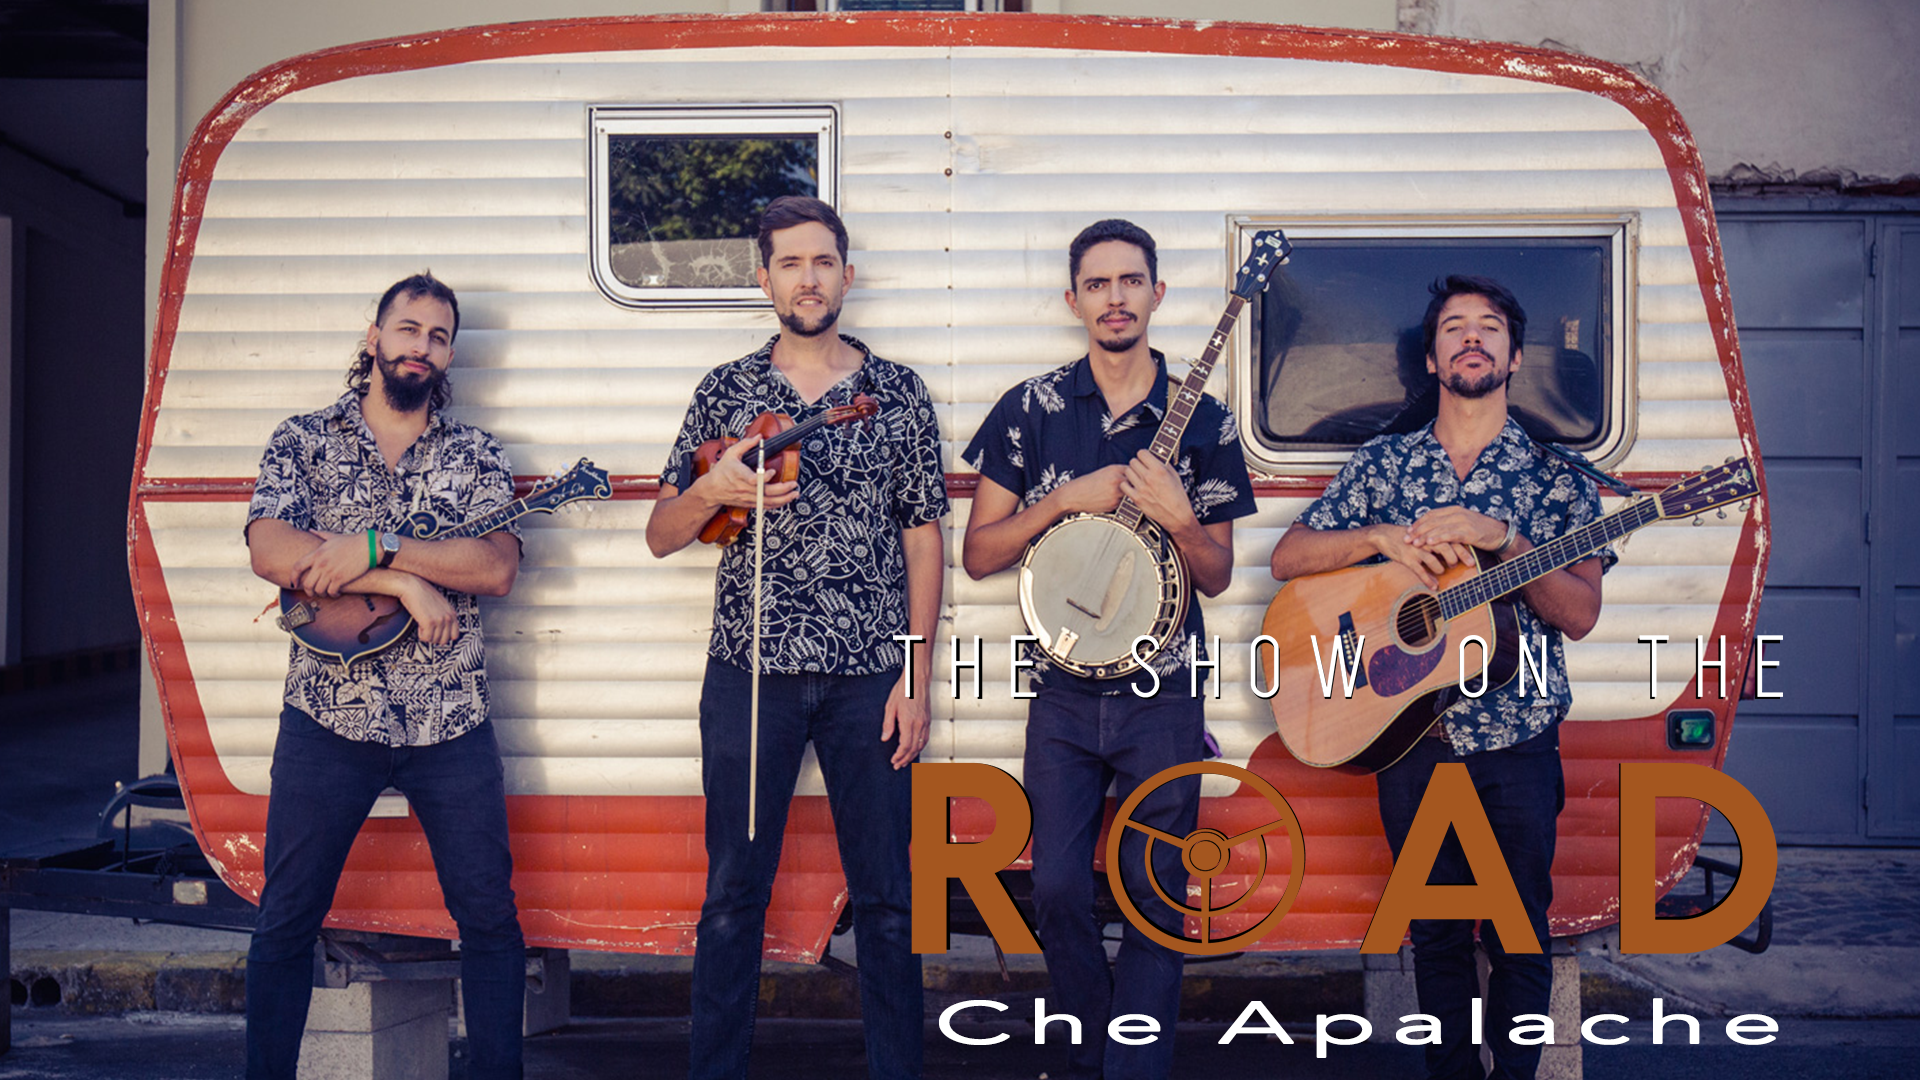 The Show On The Road – Che Apalache